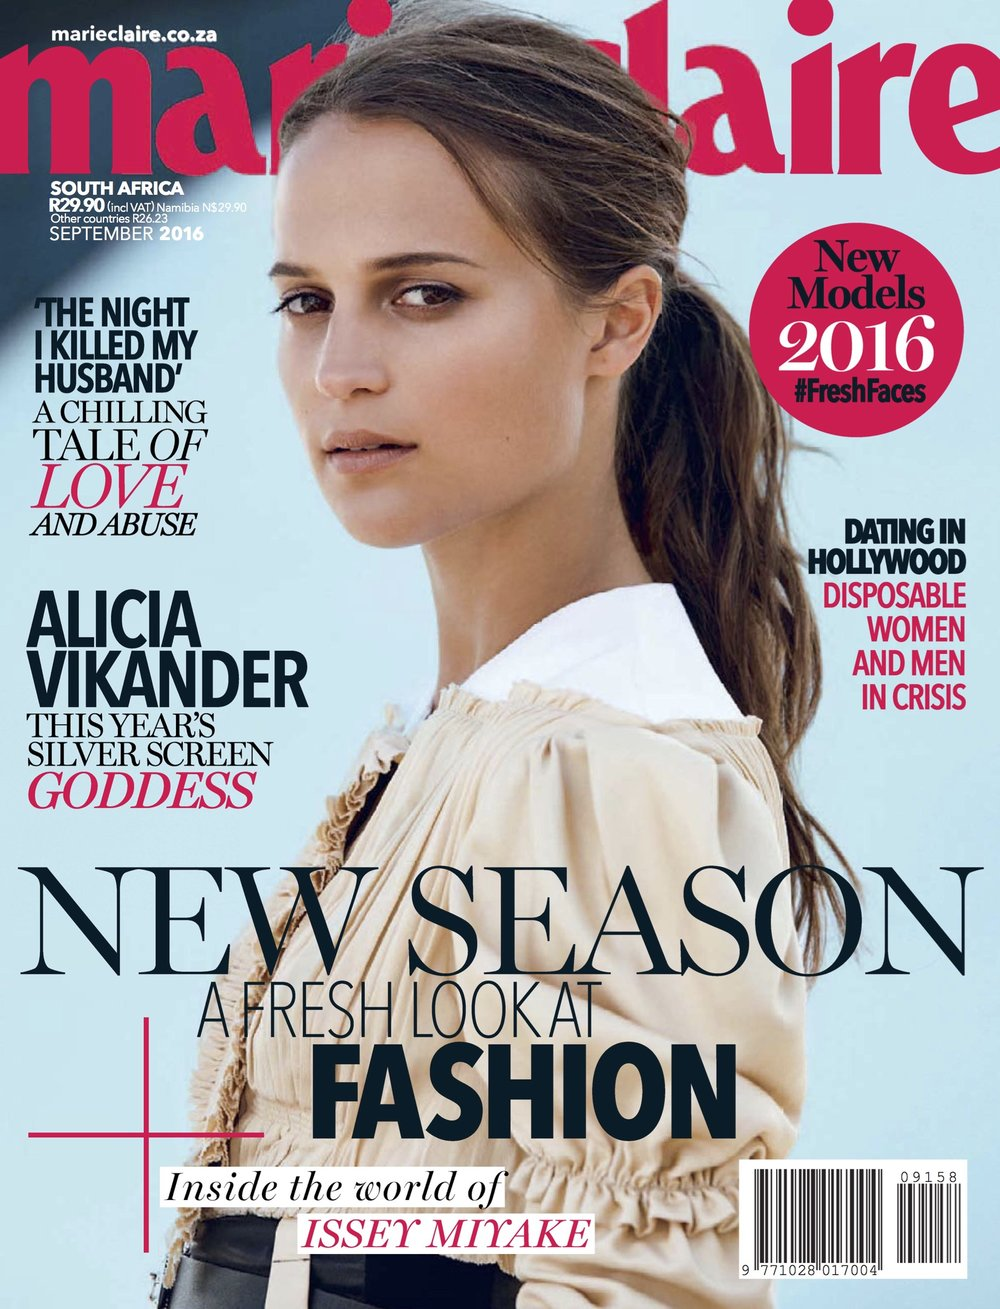 Marie Claire South Africa September 2016 Cover.jpg